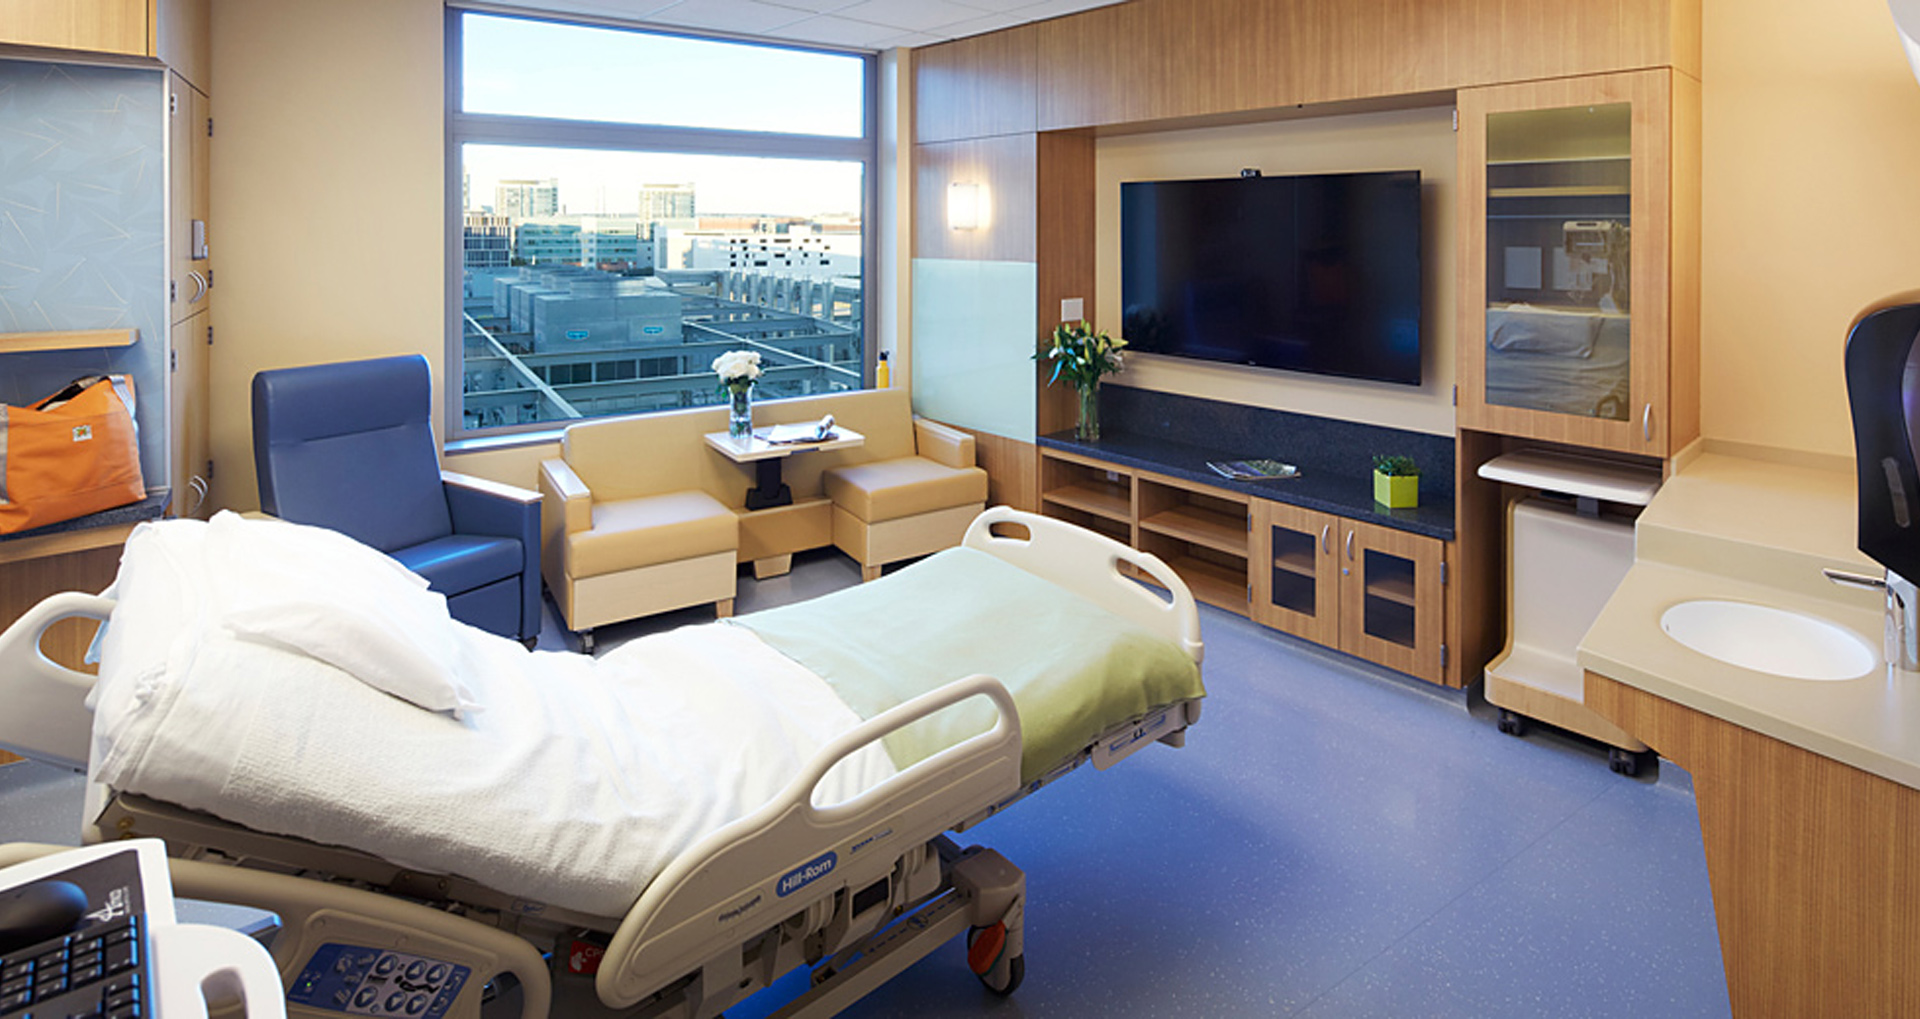 TV's for Medical Solutions | Comsat AV